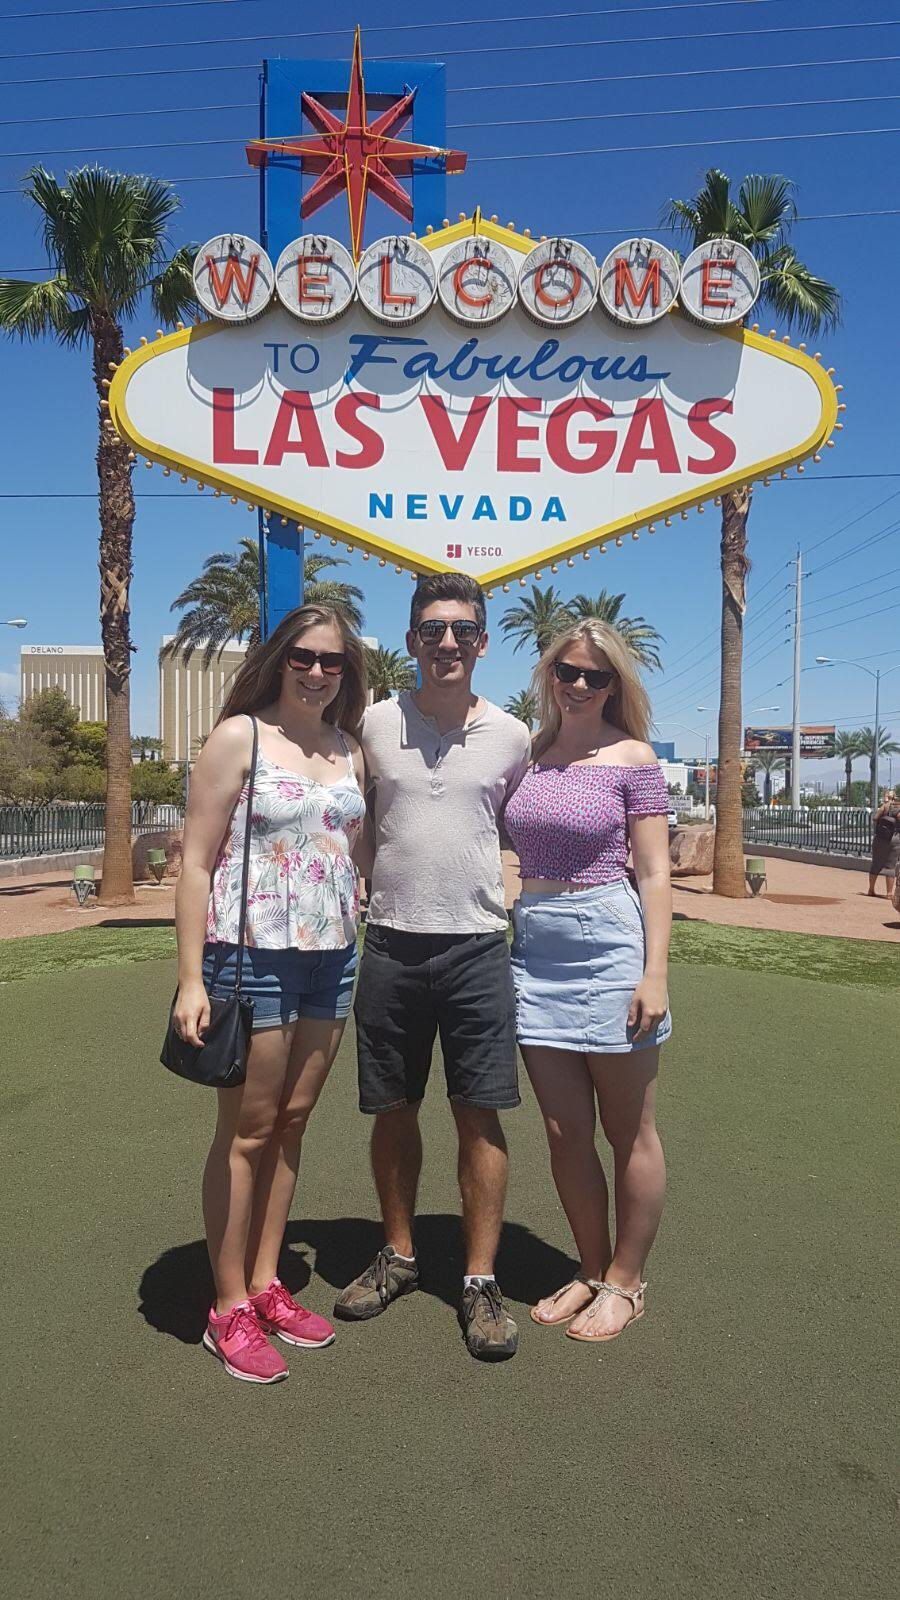 Friends at the Las Vegas Sign